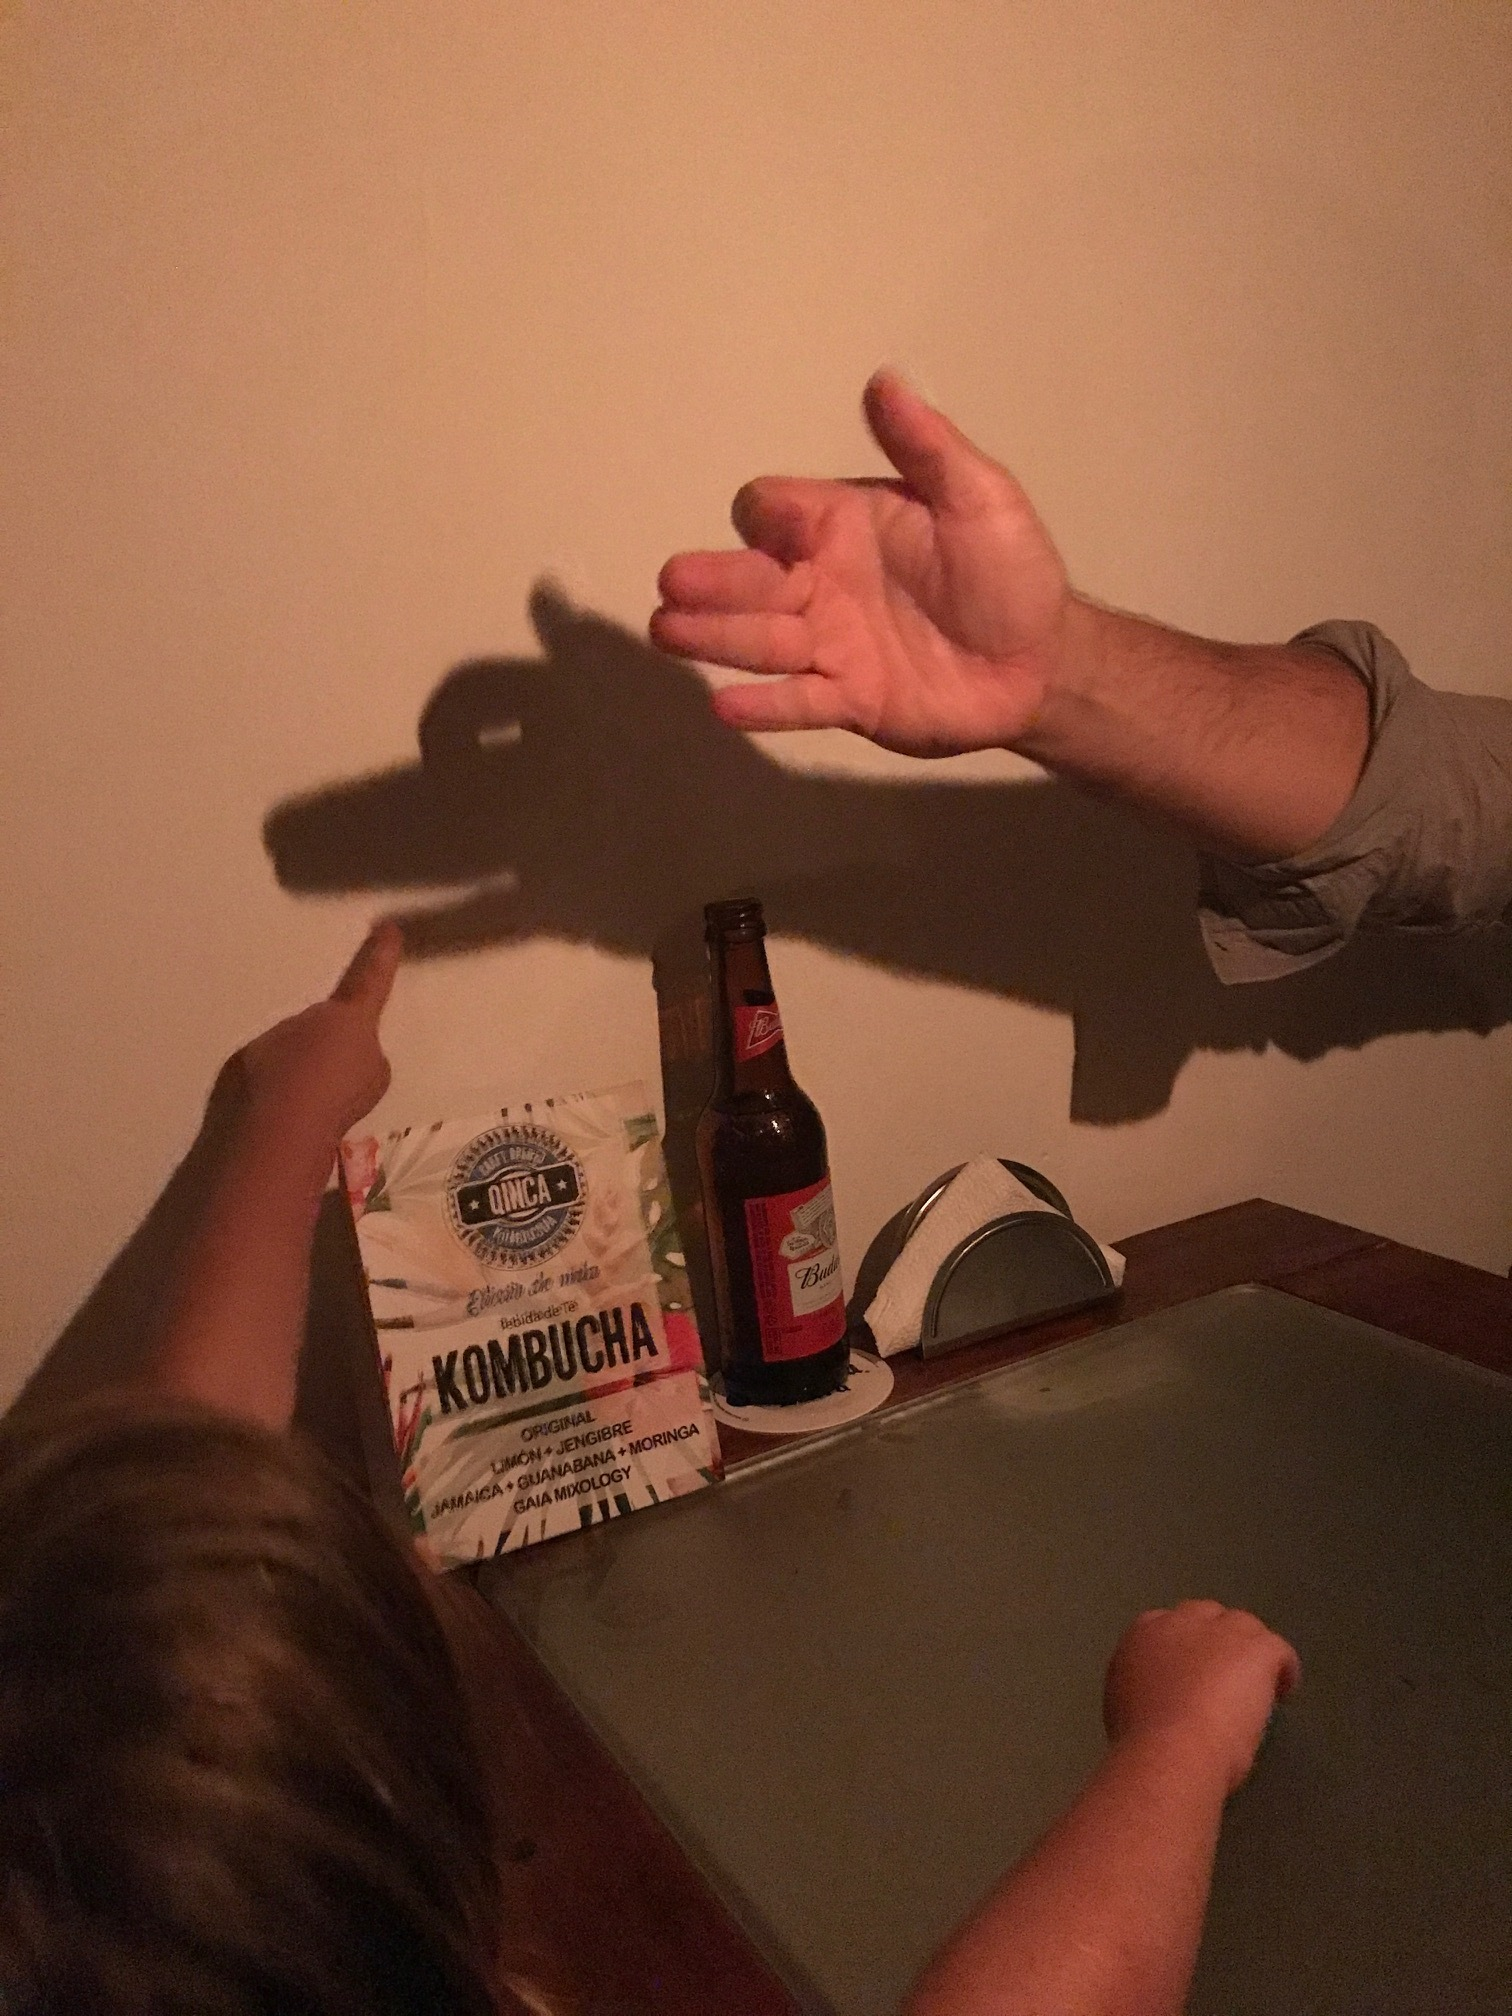 We entertained ourselves during our candlelight dinner sans electricity by making shadow puppets on the wall.